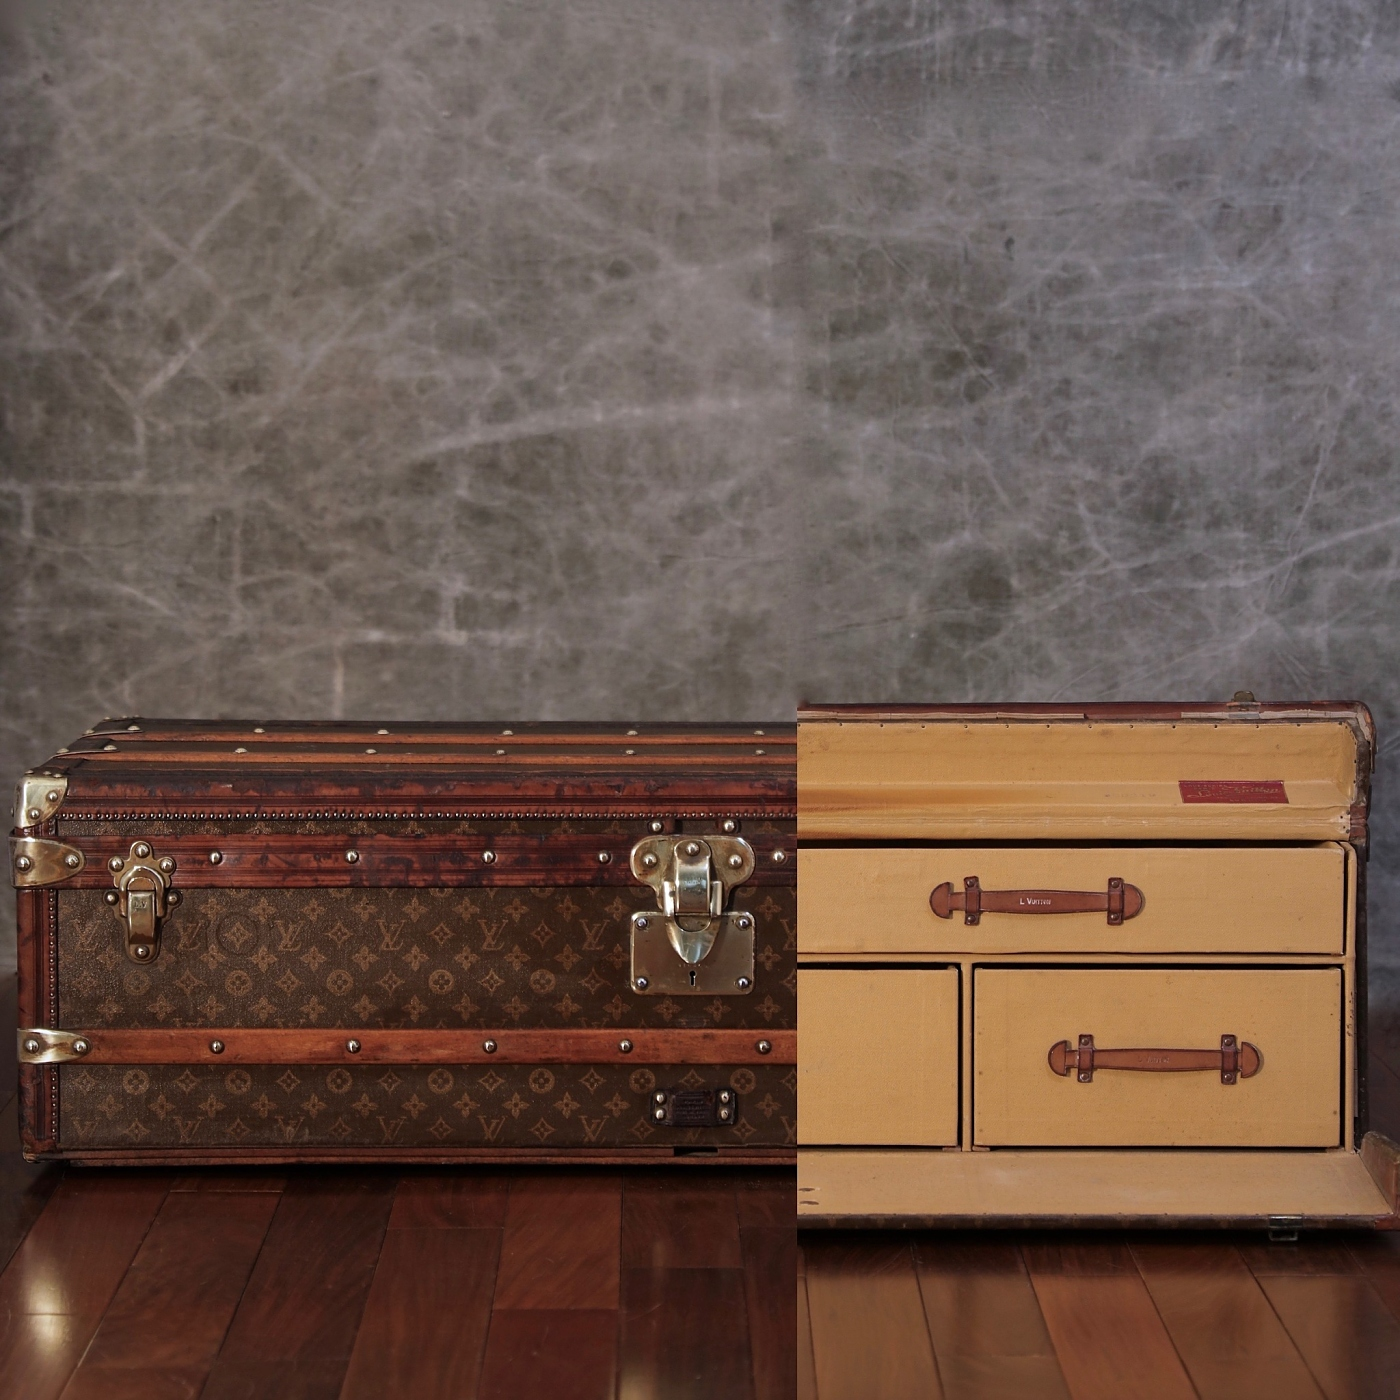 the-well-traveled-trunk-louis-vuitton-thumbnail-product-5702